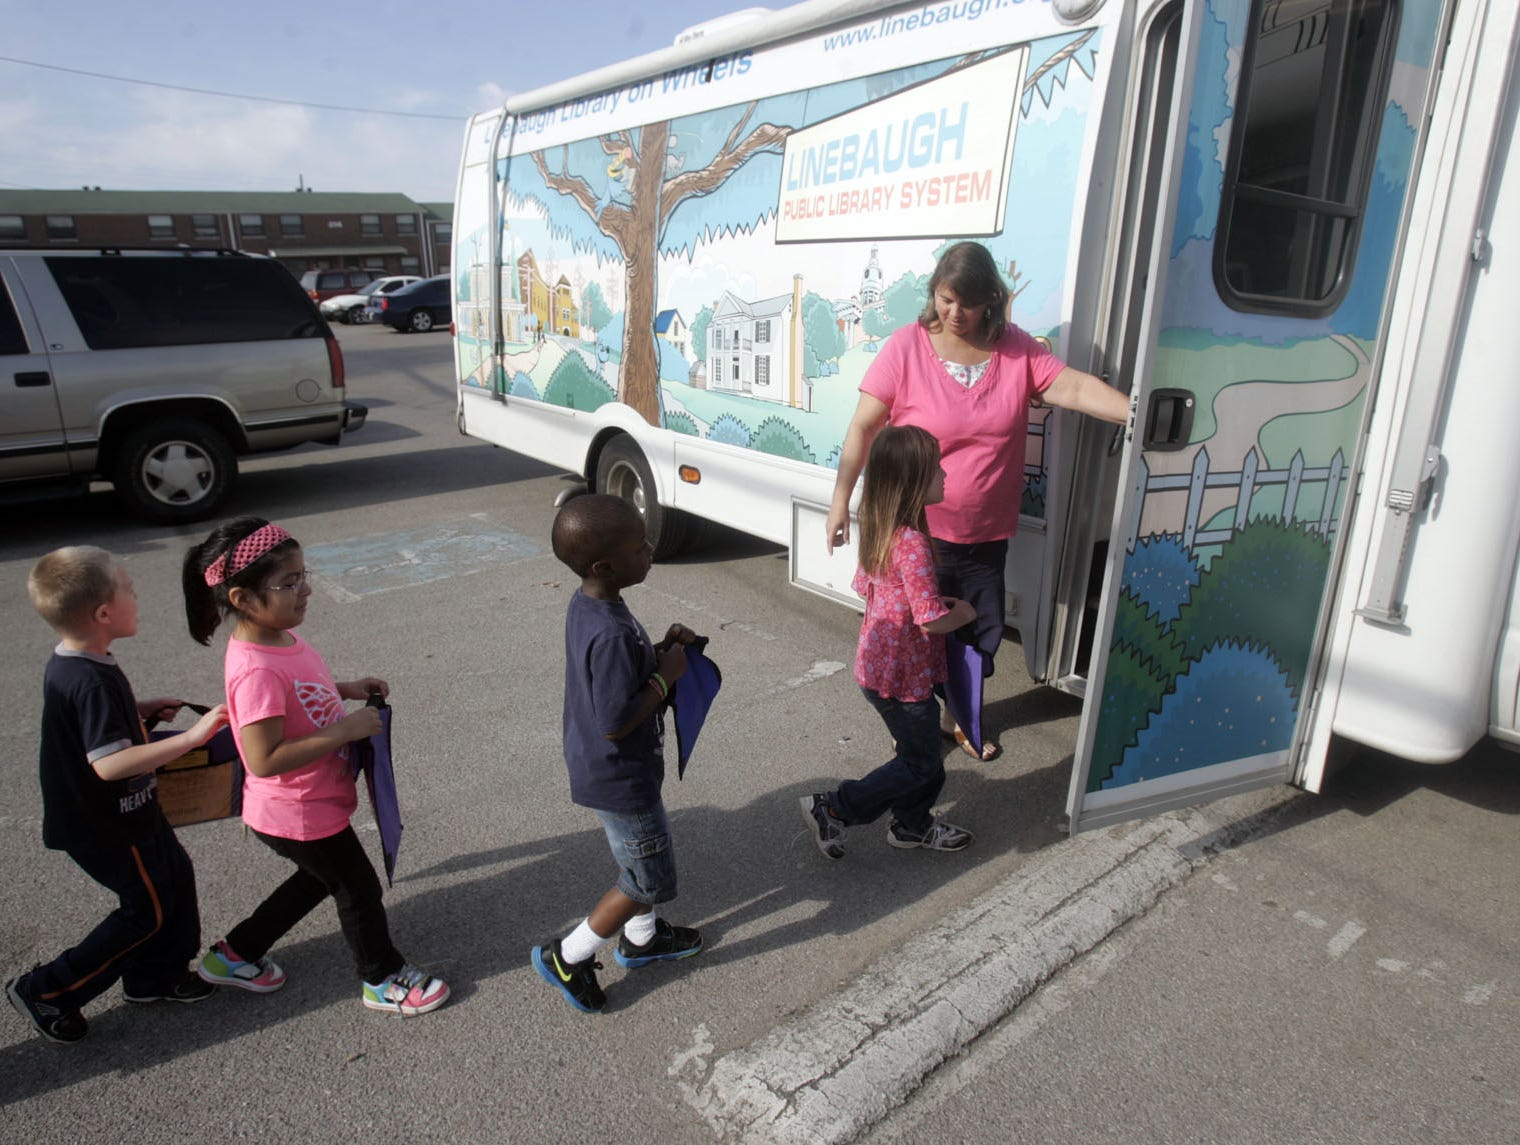 Linebaugh Library has a bookmobile to encourage literacy.